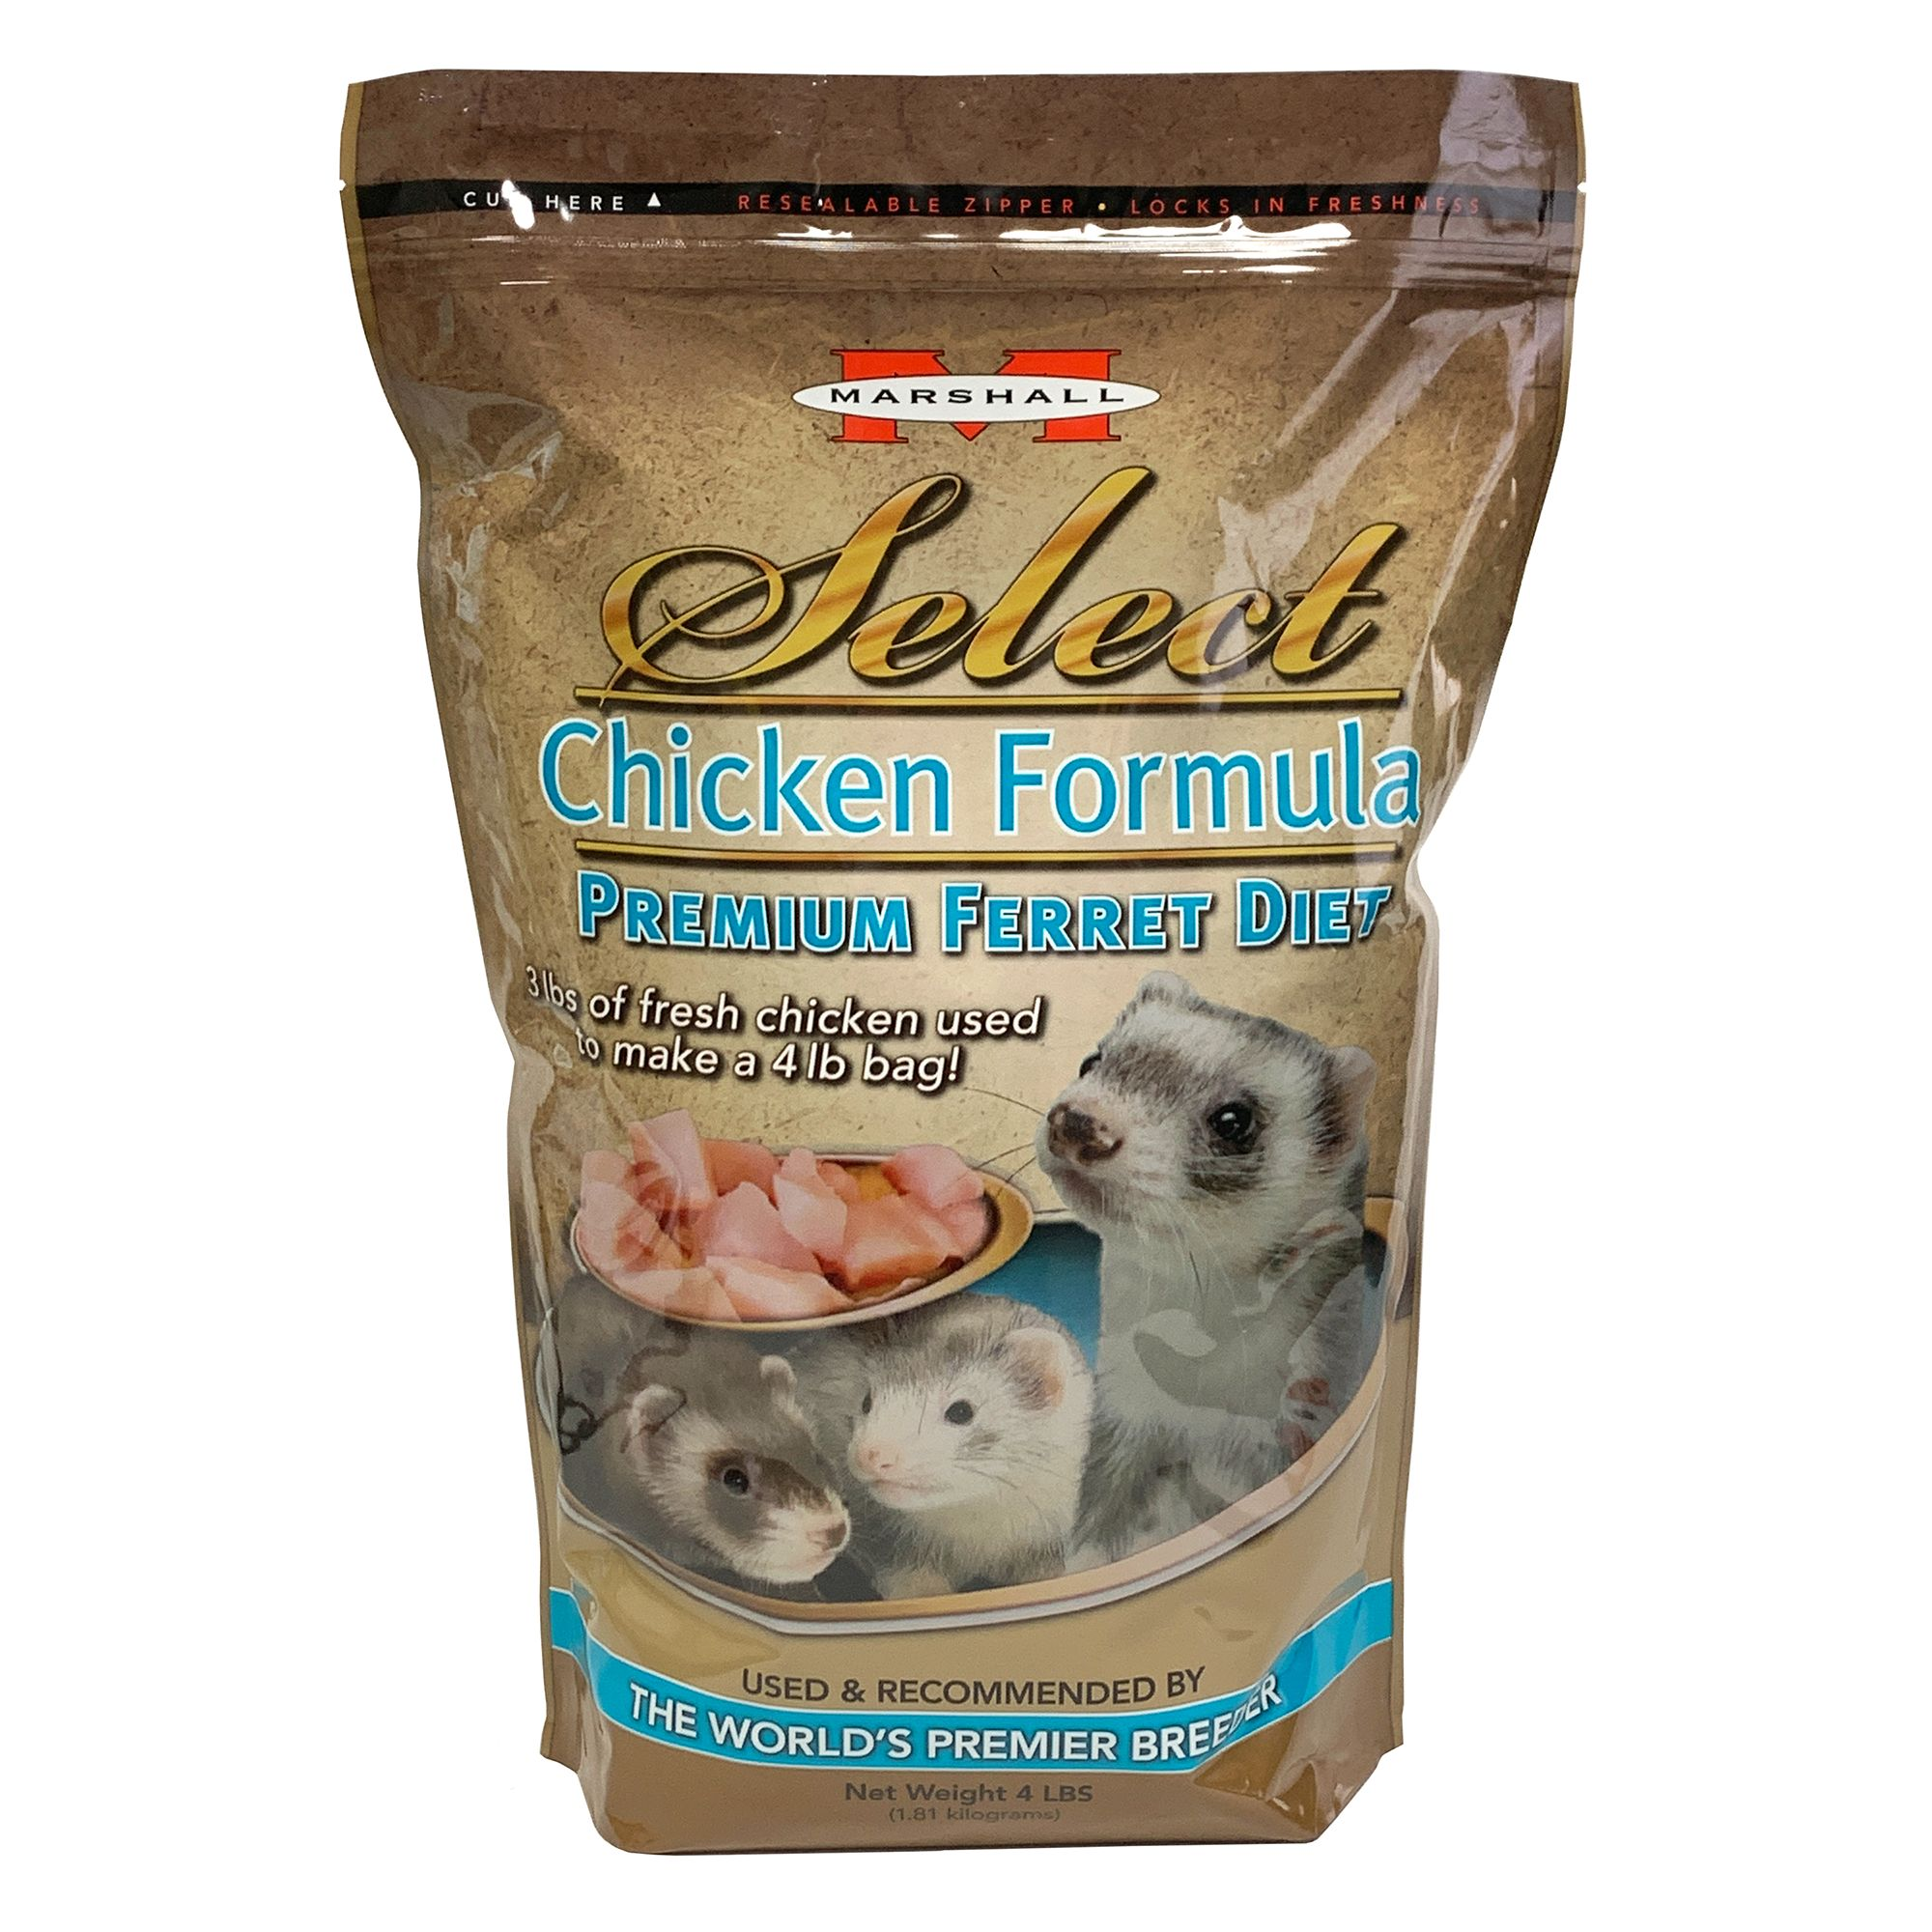 Marshall Select Premium Ferret Diet Food Size 4 Lb